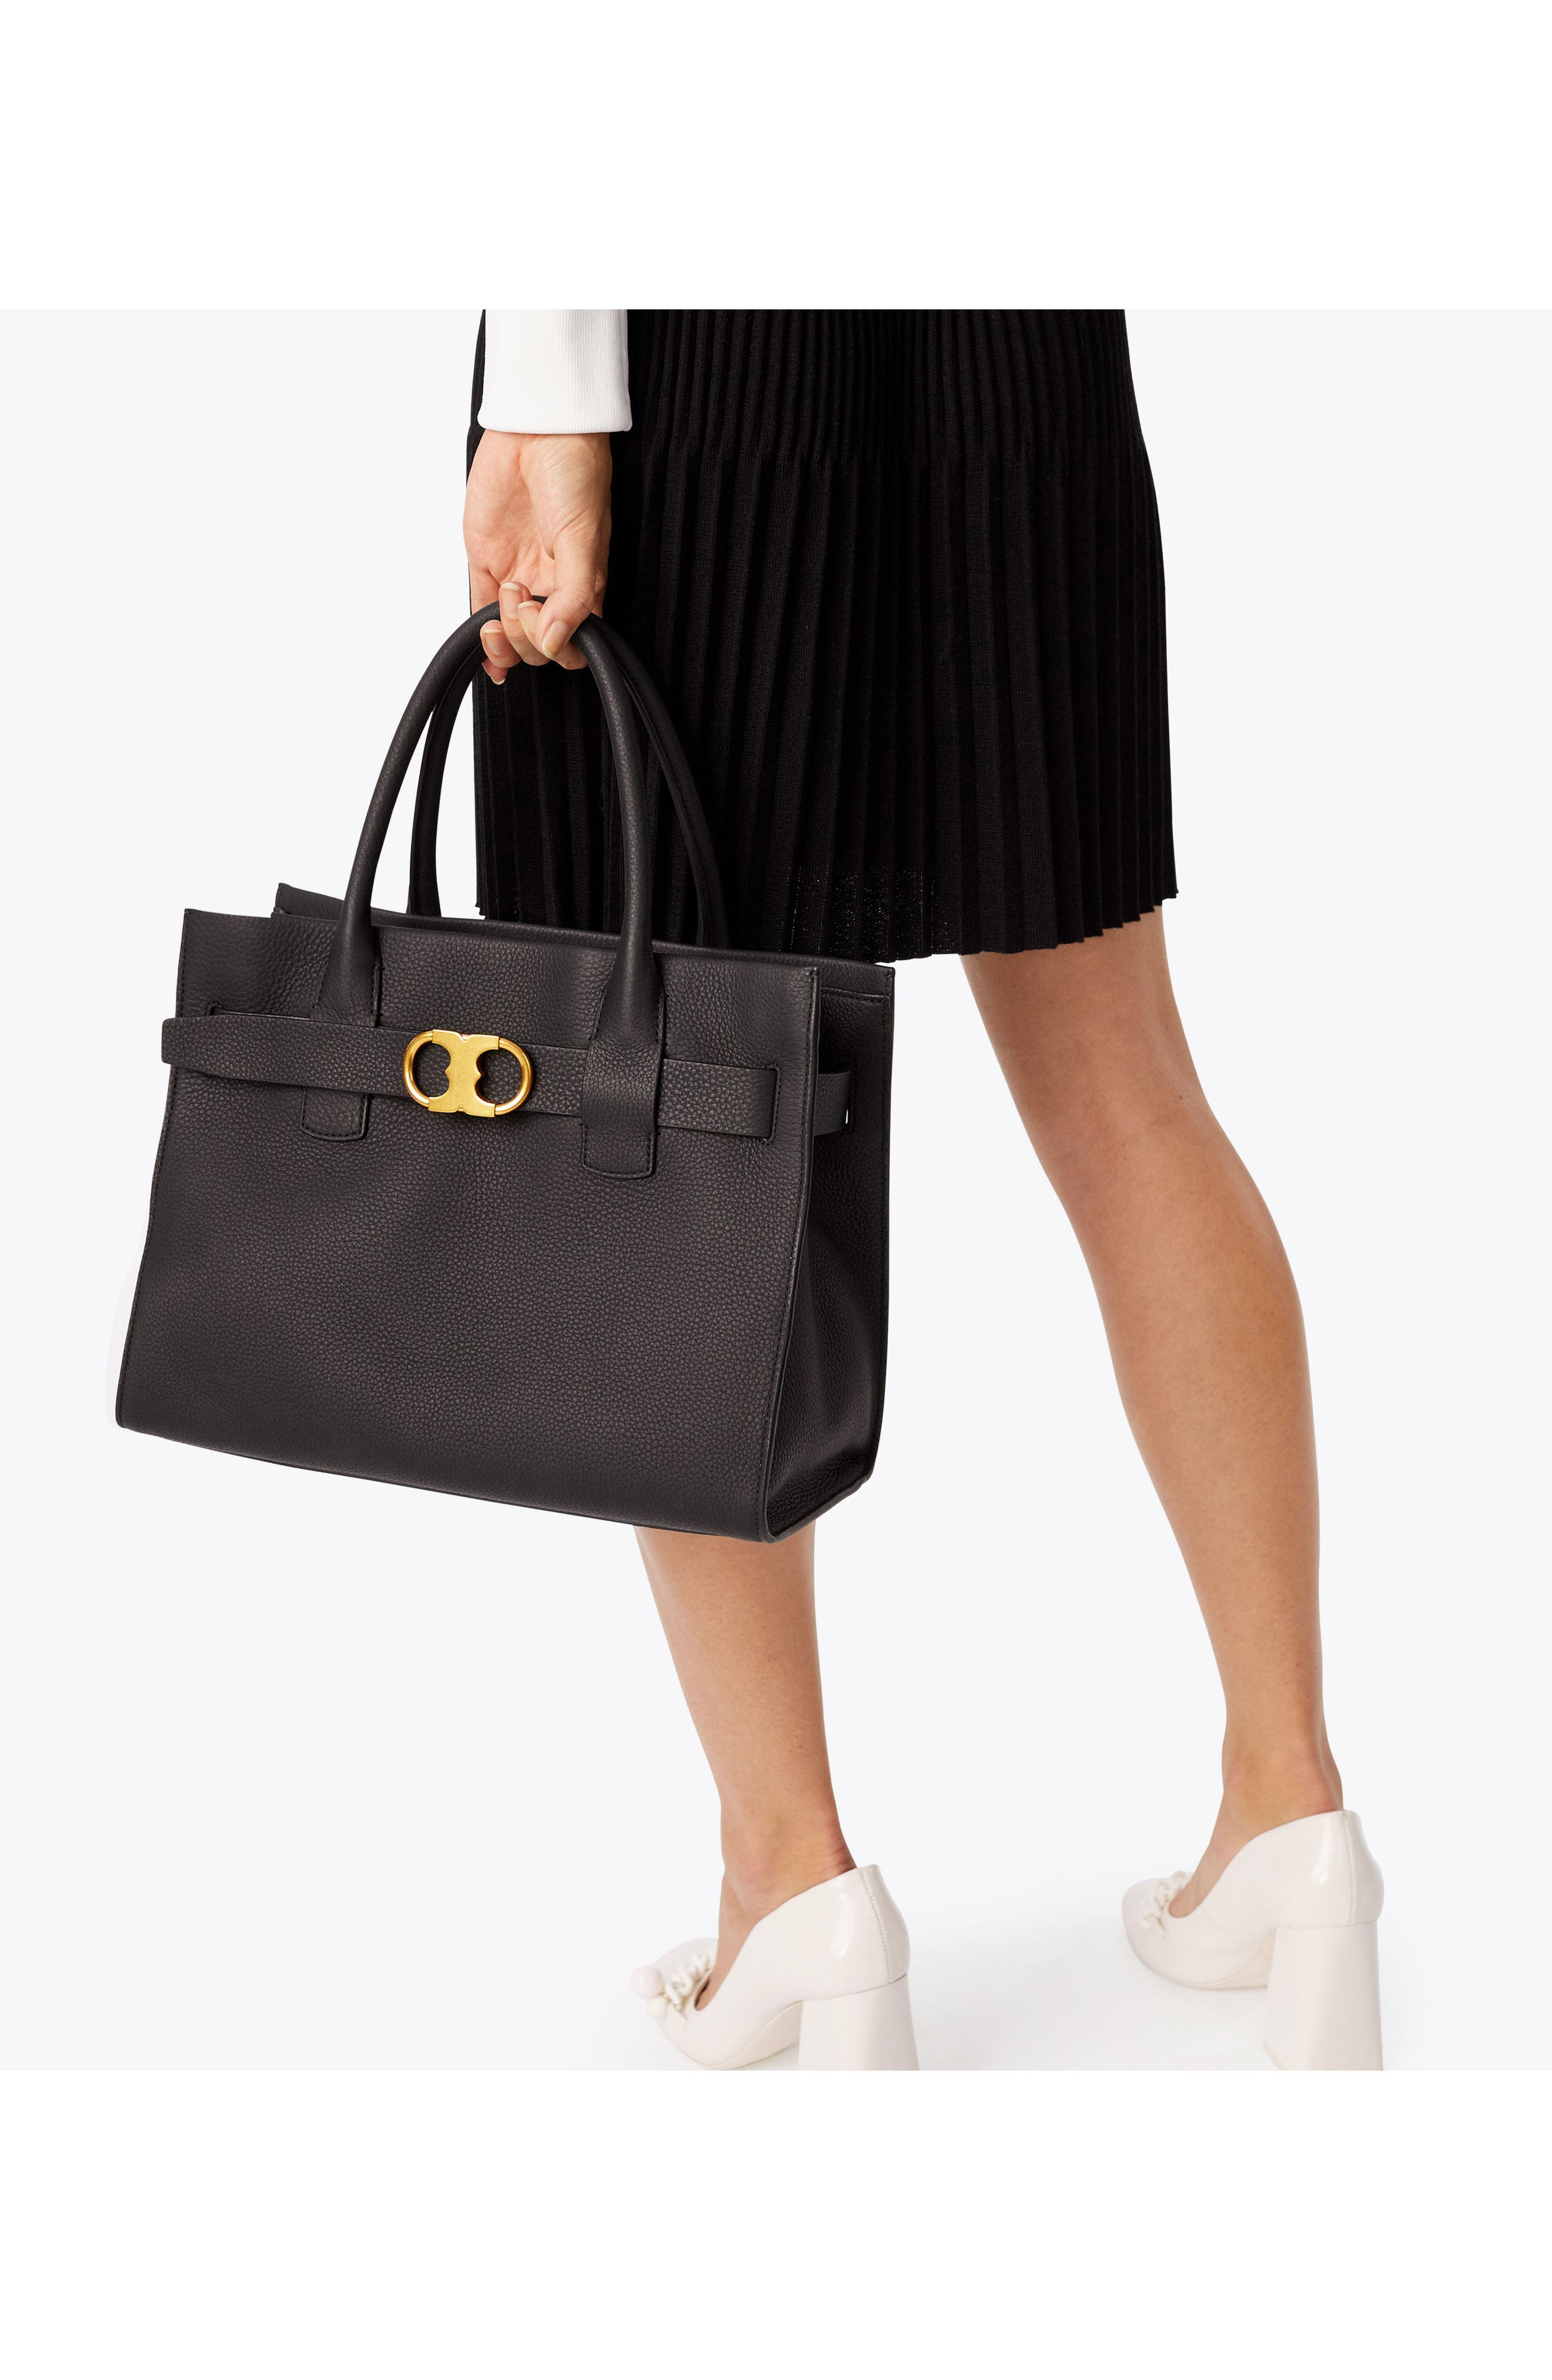 TORY BURCH,                             Gemini Link Leather Tote,                             Alternate thumbnail 8, color,                             001